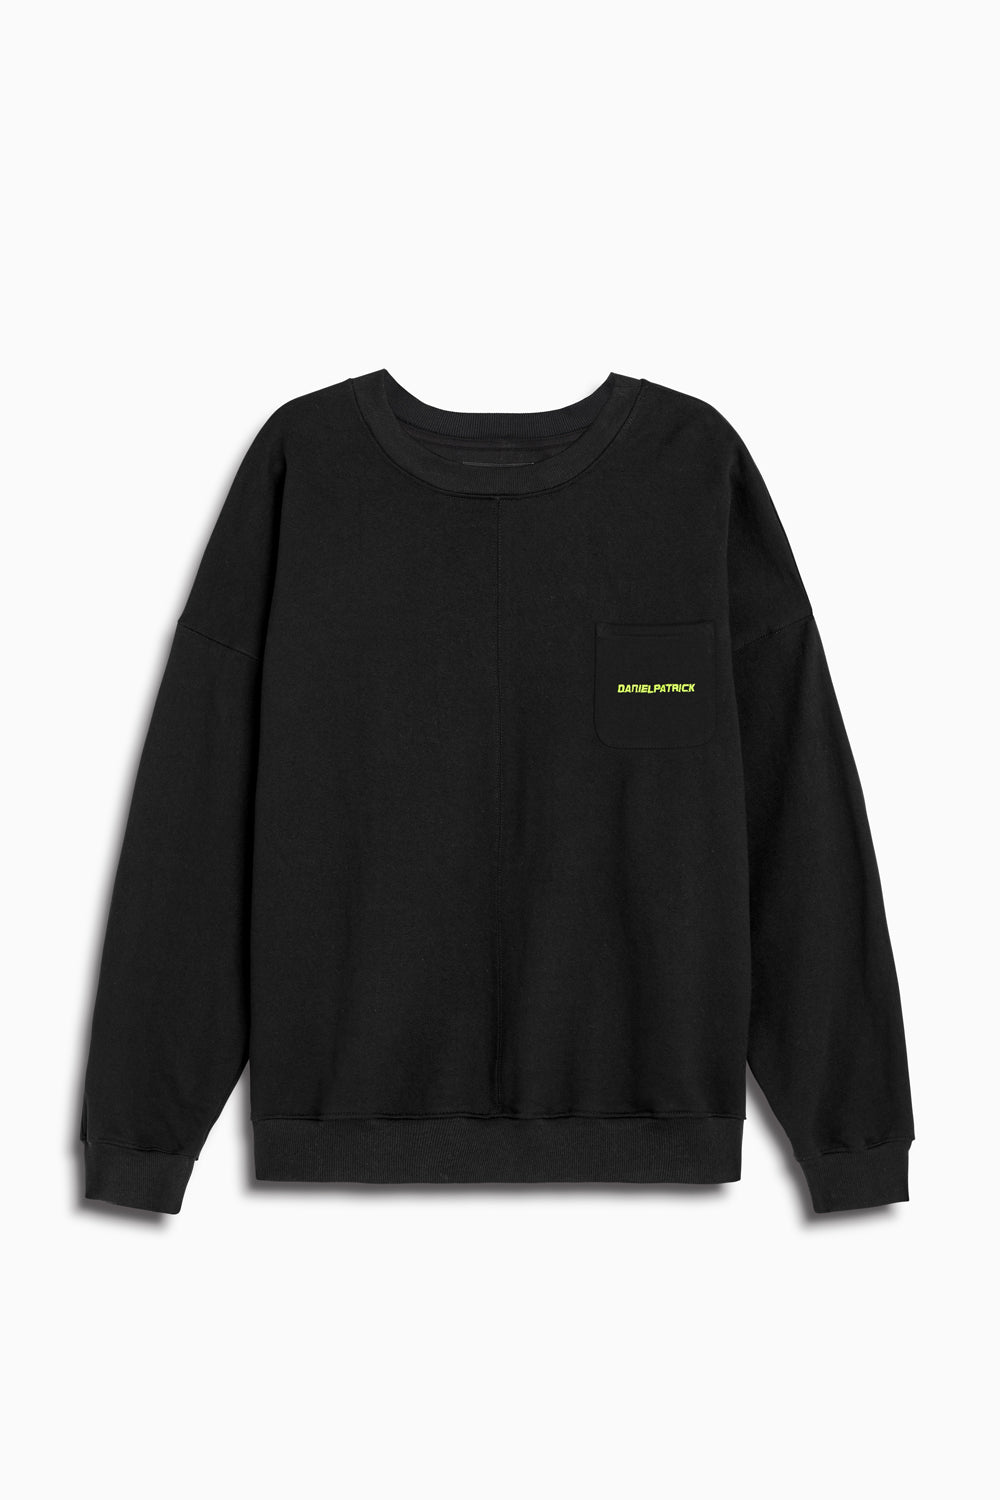 pocket crew sweat ii in black/lime by daniel patrick